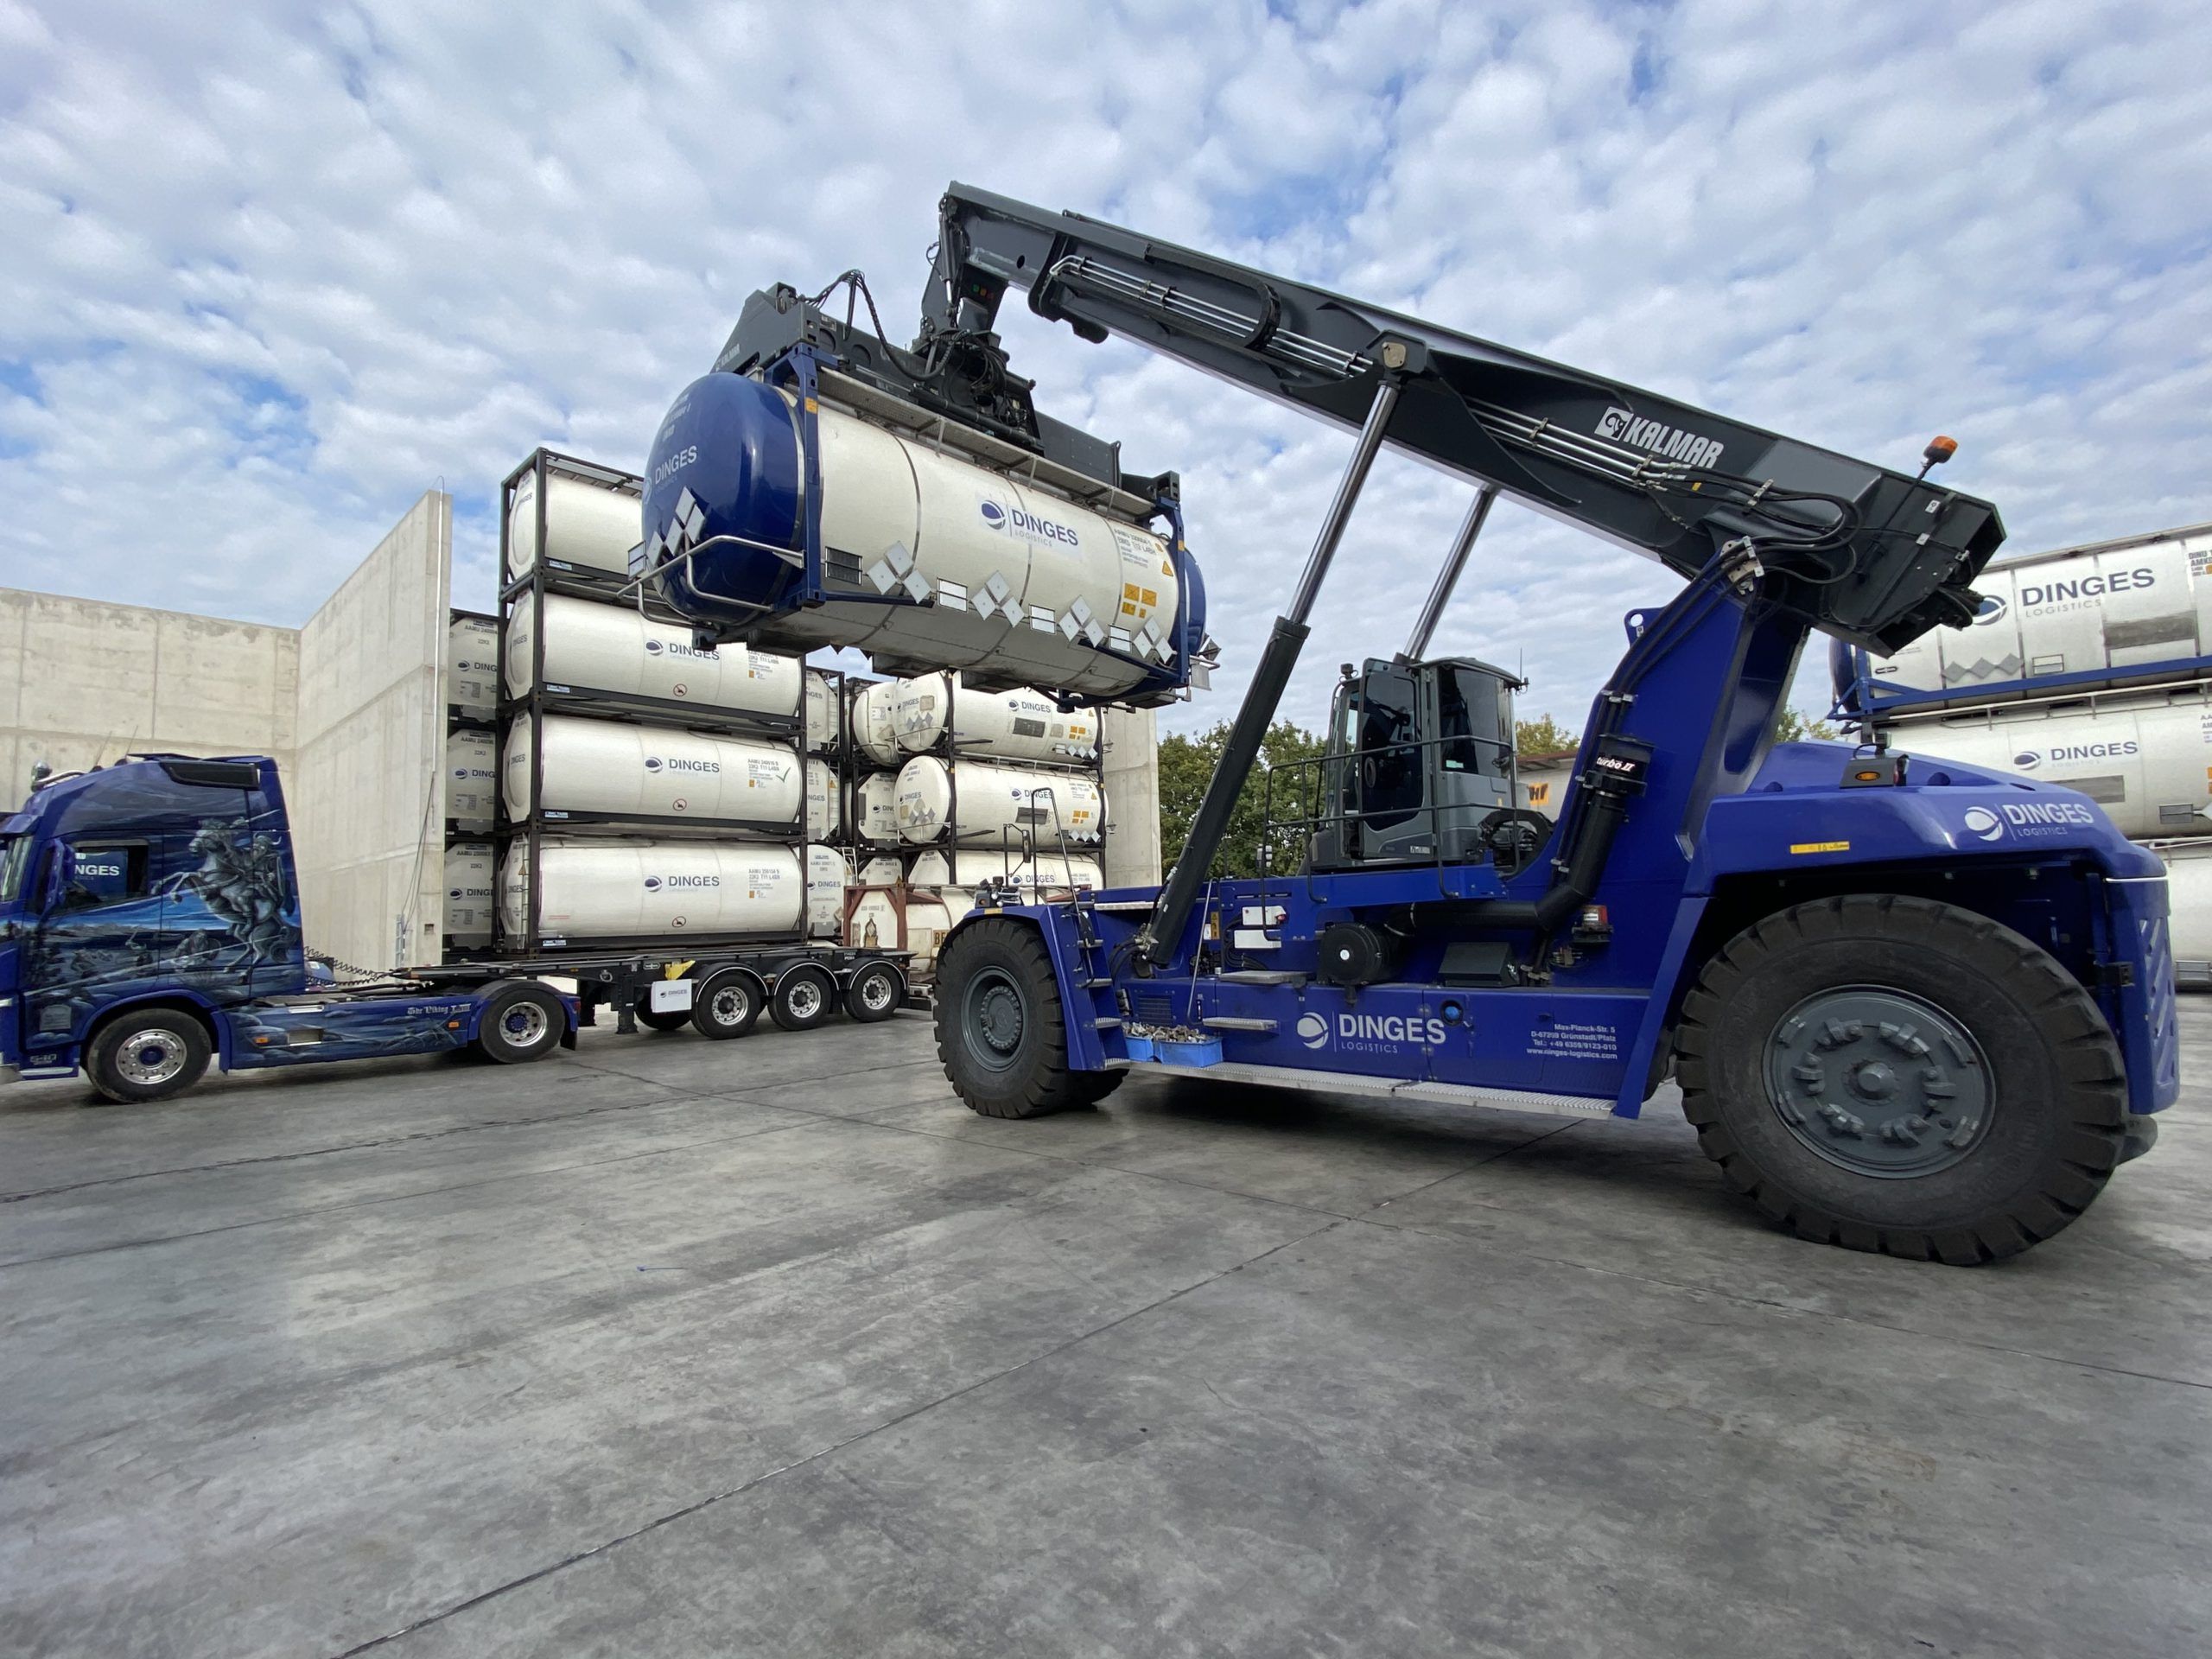 Blue reach stacker moving large white barrels onto a stack of barrels